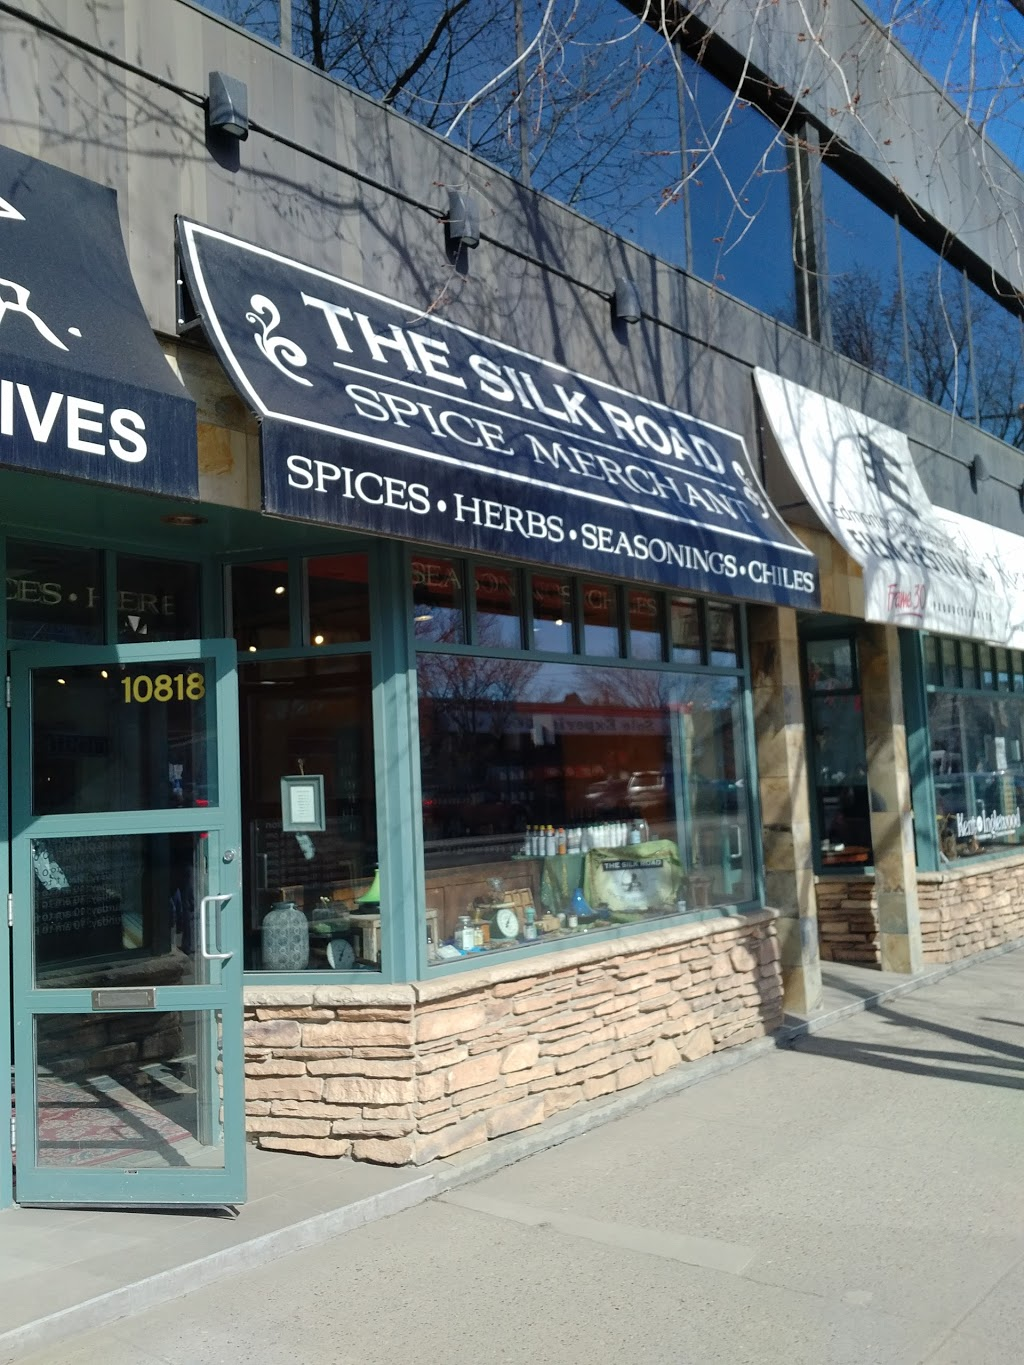 The Silk Road Spice Merchant | store | 10818 82 Ave NW, Edmonton, AB T6E 2B3, Canada | 7804280224 OR +1 780-428-0224